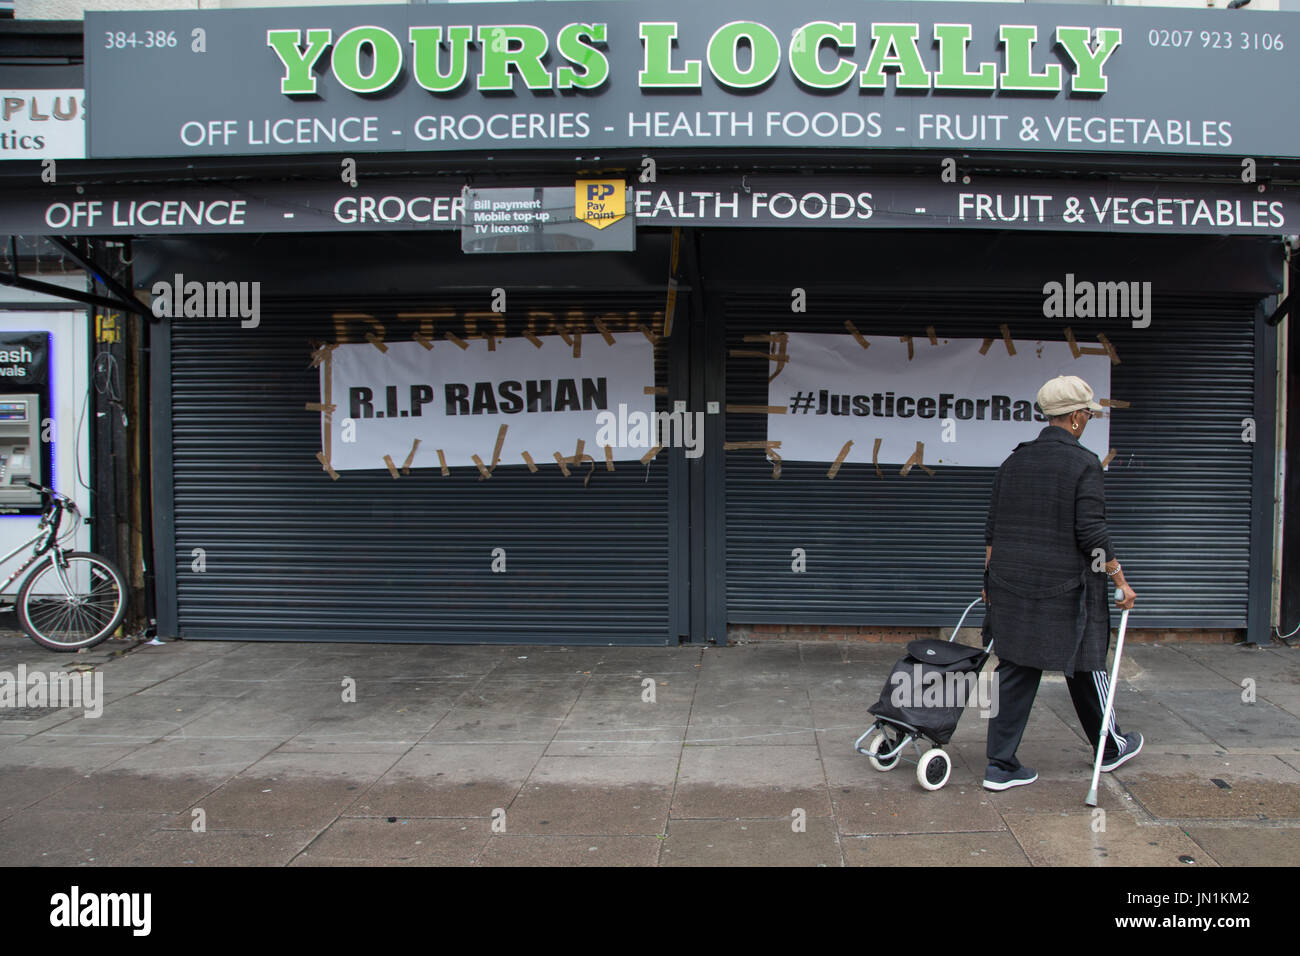 London, UK. 29th July, 2017. A woman walks outside the Yours Locally shop in Kingsland Road where Rashan Charles was arrested in Dalston, east London. Credit: Thabo Jaiyesimi/Alamy Live News - Stock Image